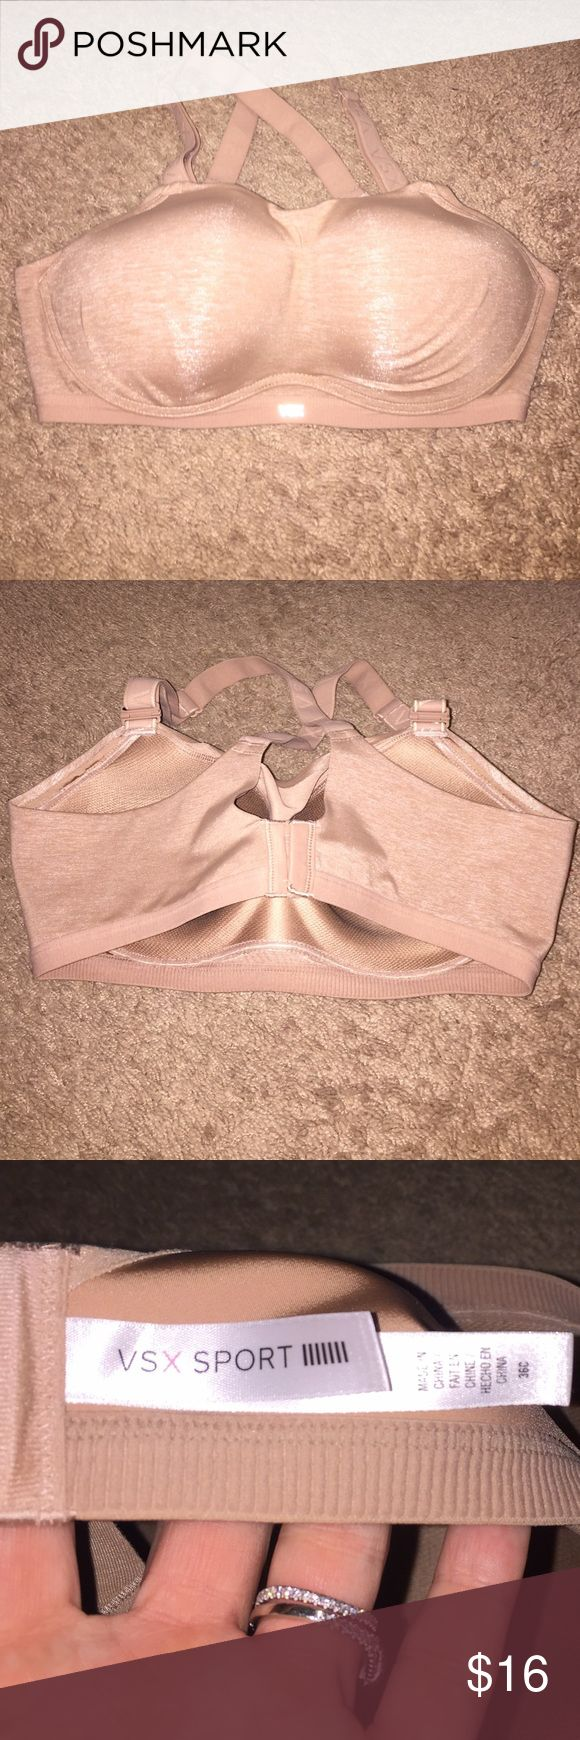 Victoria's Secret nude sports bra! Incredible 💋 This has been washed but never worn. Bought it to work off the baby weight but didn't start running until the girls were too small to fit tho size! Victoria's Secret Intimates & Sleepwear Bras